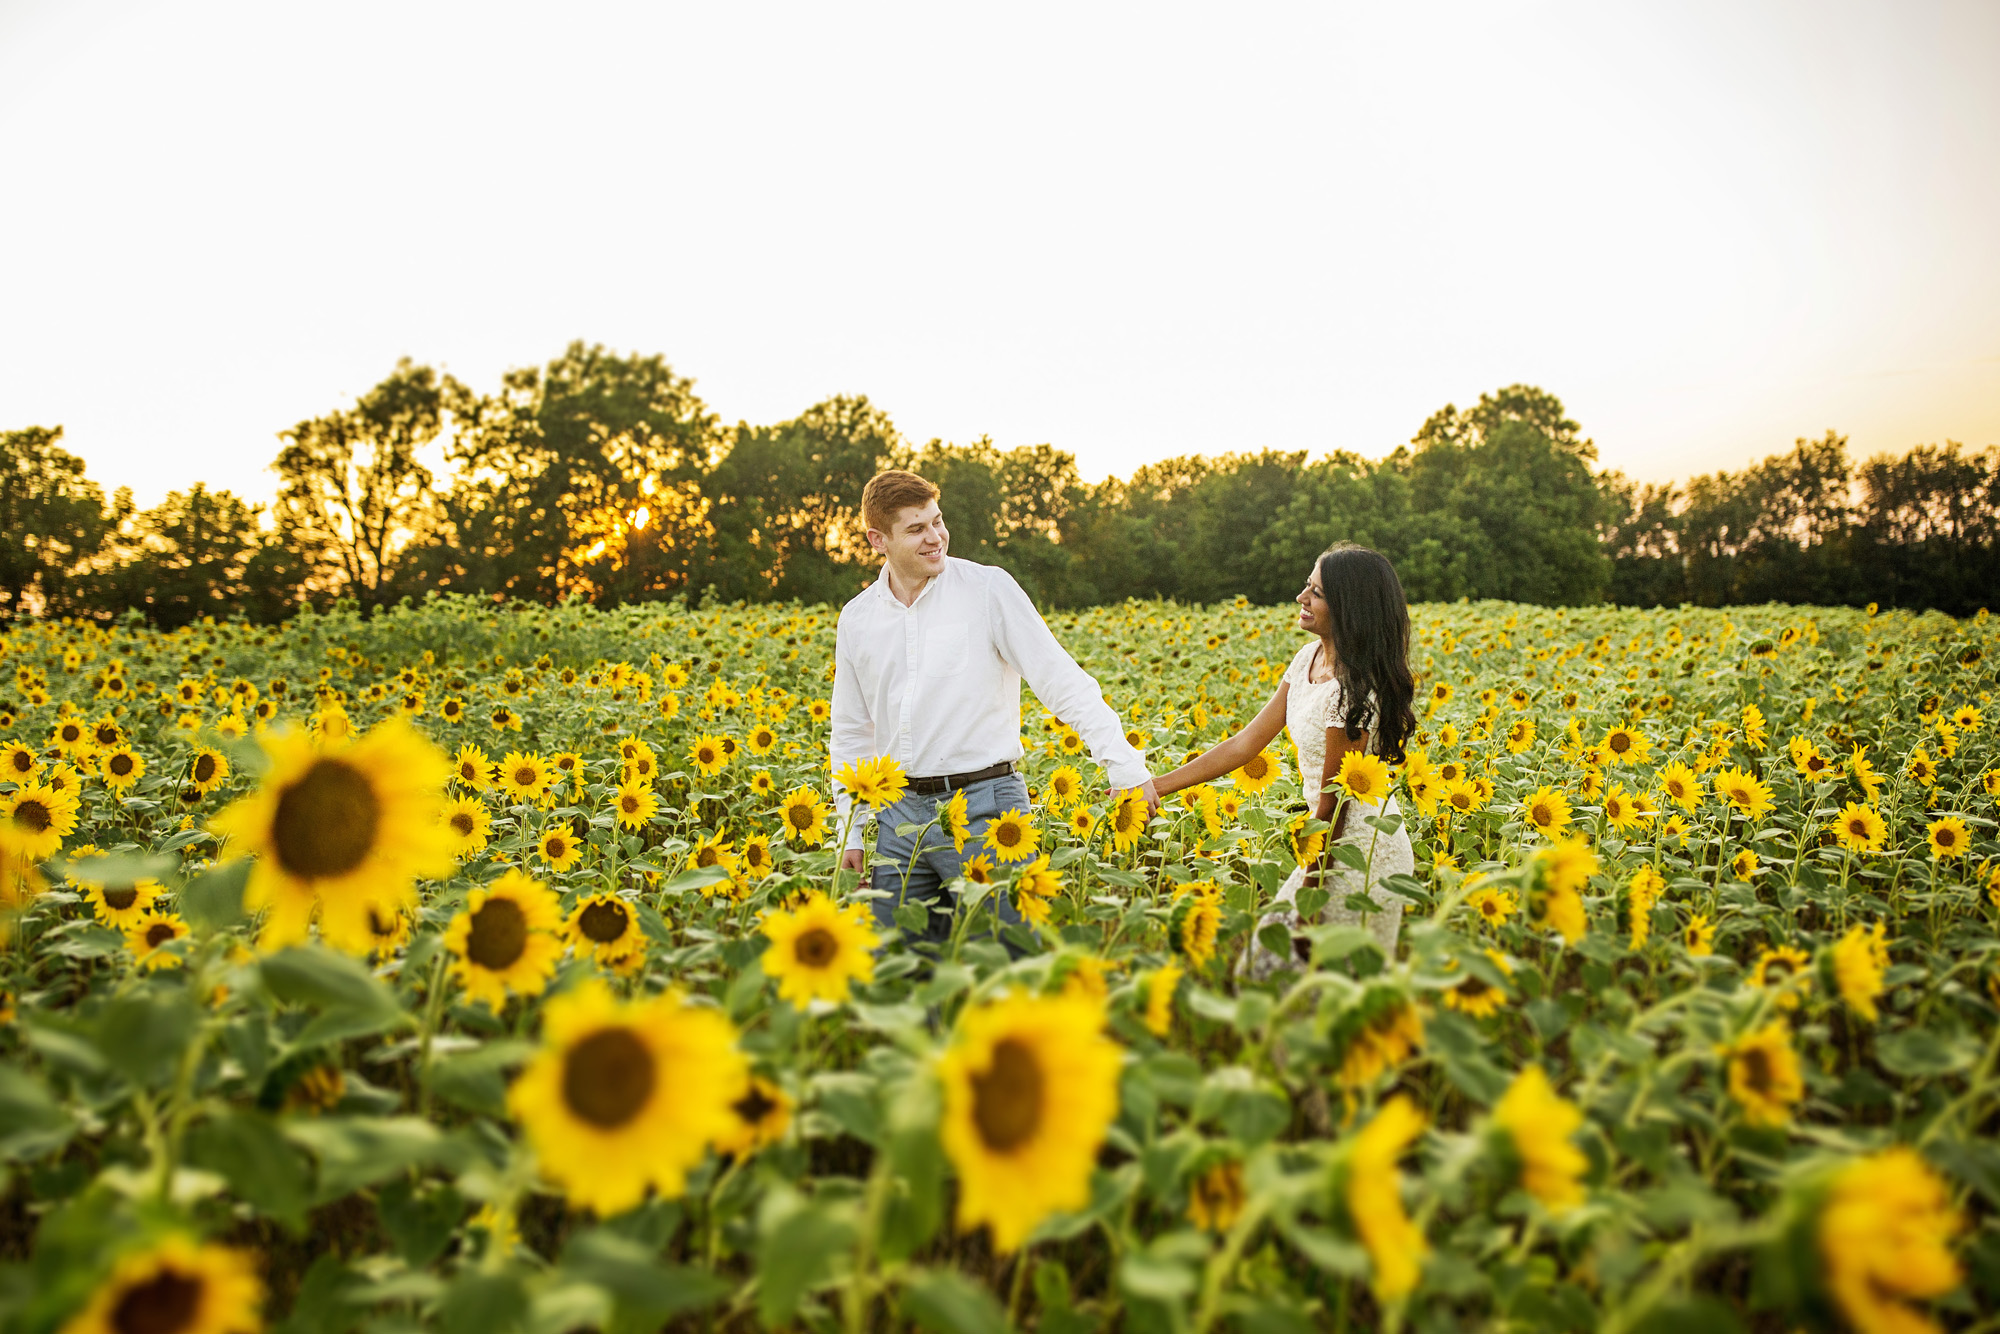 Seriously_Sabrina_Photography_Lexington_Midway_Kentucky_Engagement_Merefield_Sunflowers_Naz_and_Drew20.jpg